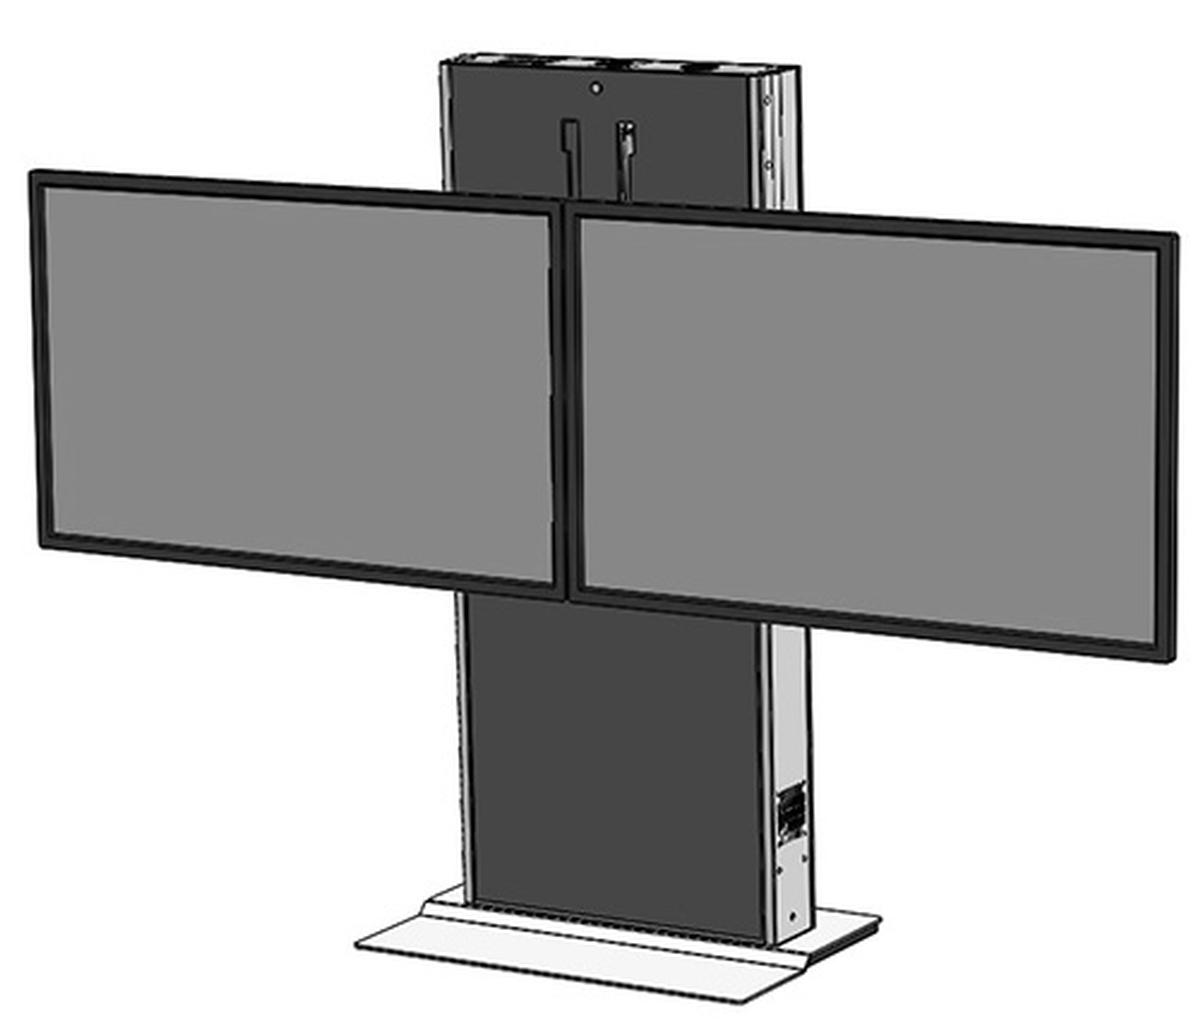 lft7000fs d heavy duty fixed lift stand for dual tv 39 s and interactive displays audio visual. Black Bedroom Furniture Sets. Home Design Ideas